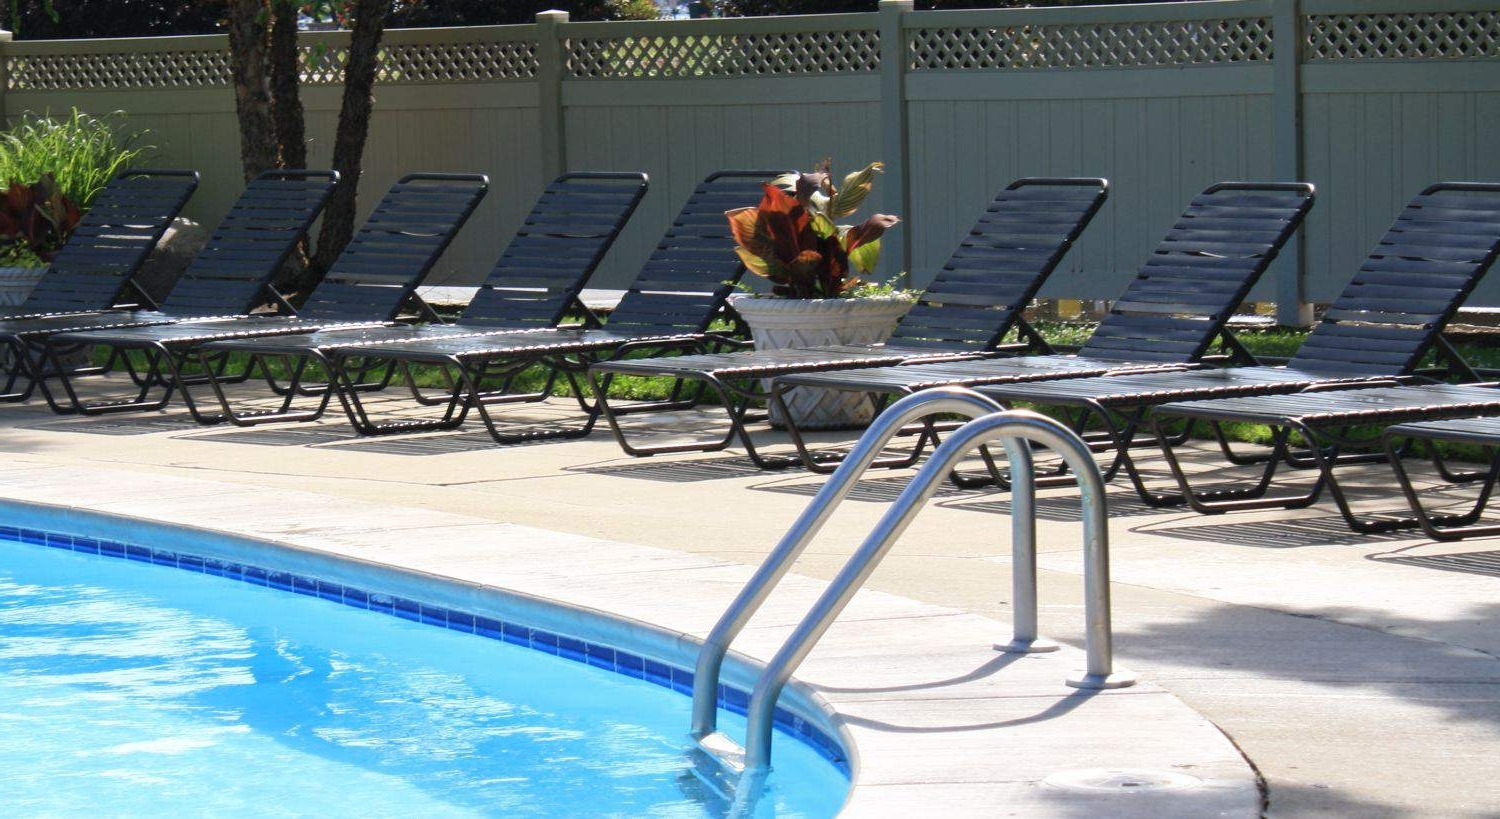 Patiosusa In Widely Used Vinyl Strap Chaise Lounge Chairs (View 8 of 15)